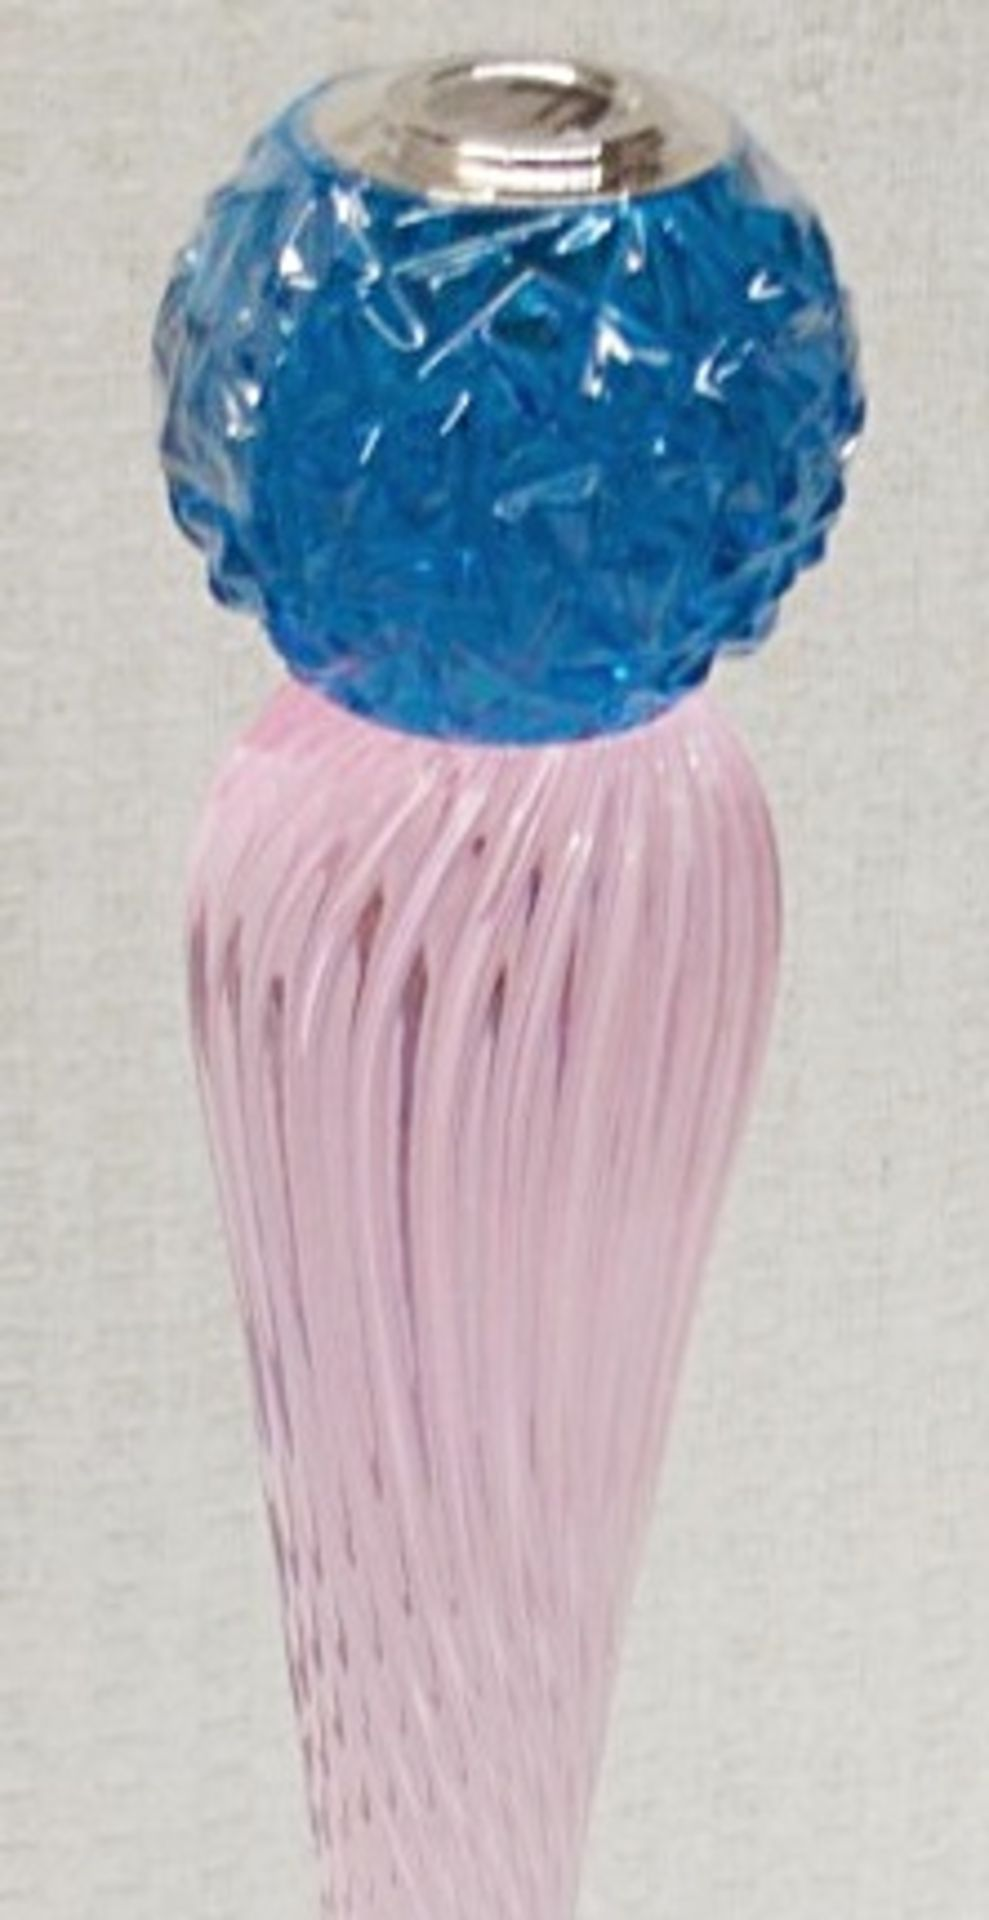 1 x BALDI 'Home Jewels' Italian Hand-crafted Artisan Candle Stick In Blue And Pink Crystal, With A - Image 2 of 3